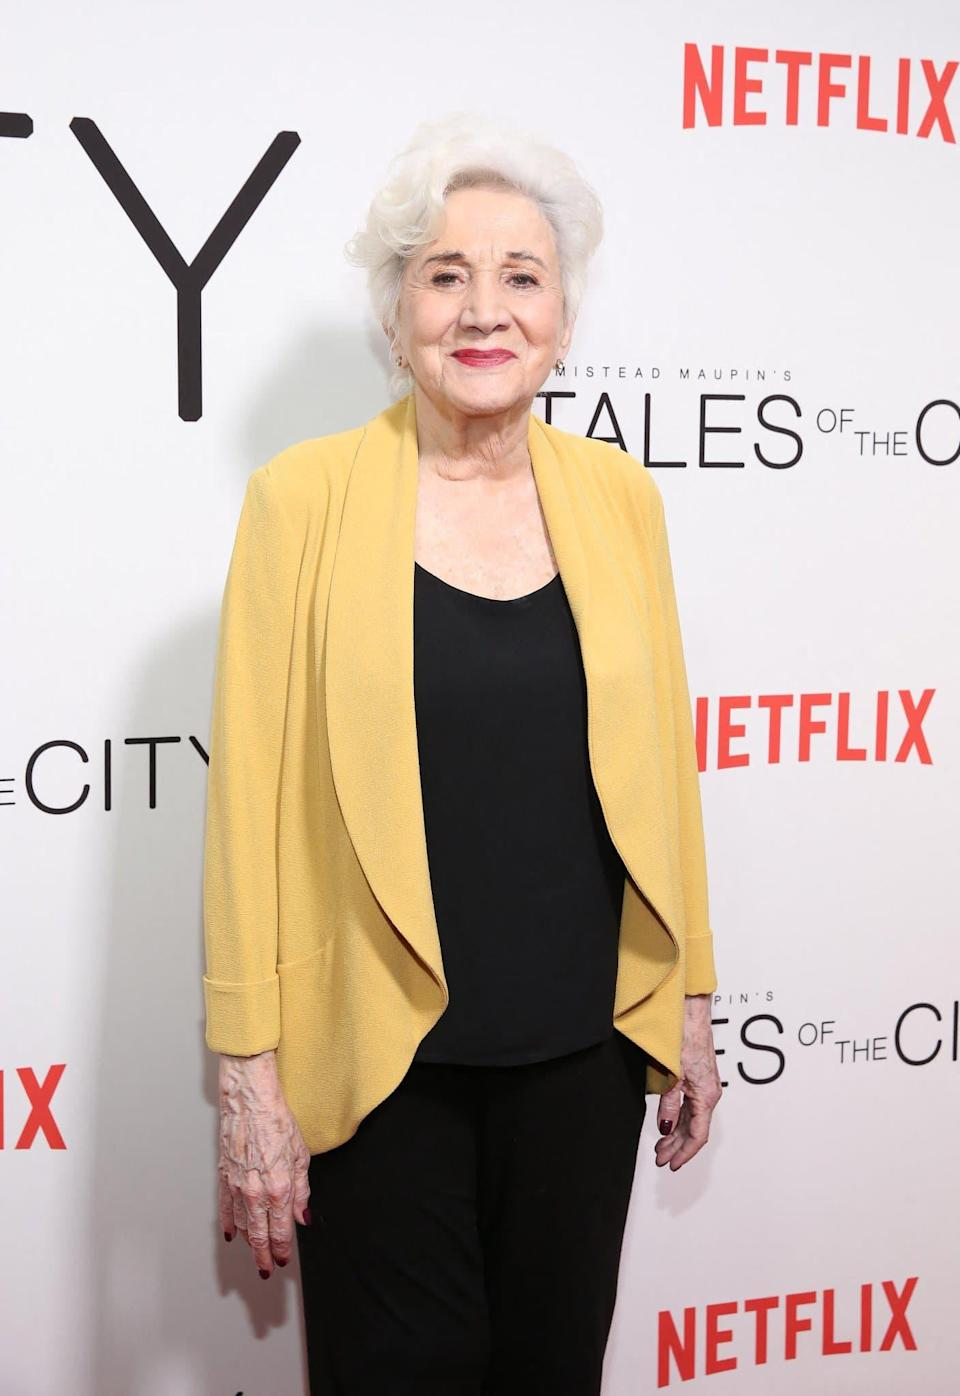 Olympia Dukakis à New York en 2019 - THEO WARGO / GETTY IMAGES NORTH AMERICA / GETTY IMAGES VIA AFP